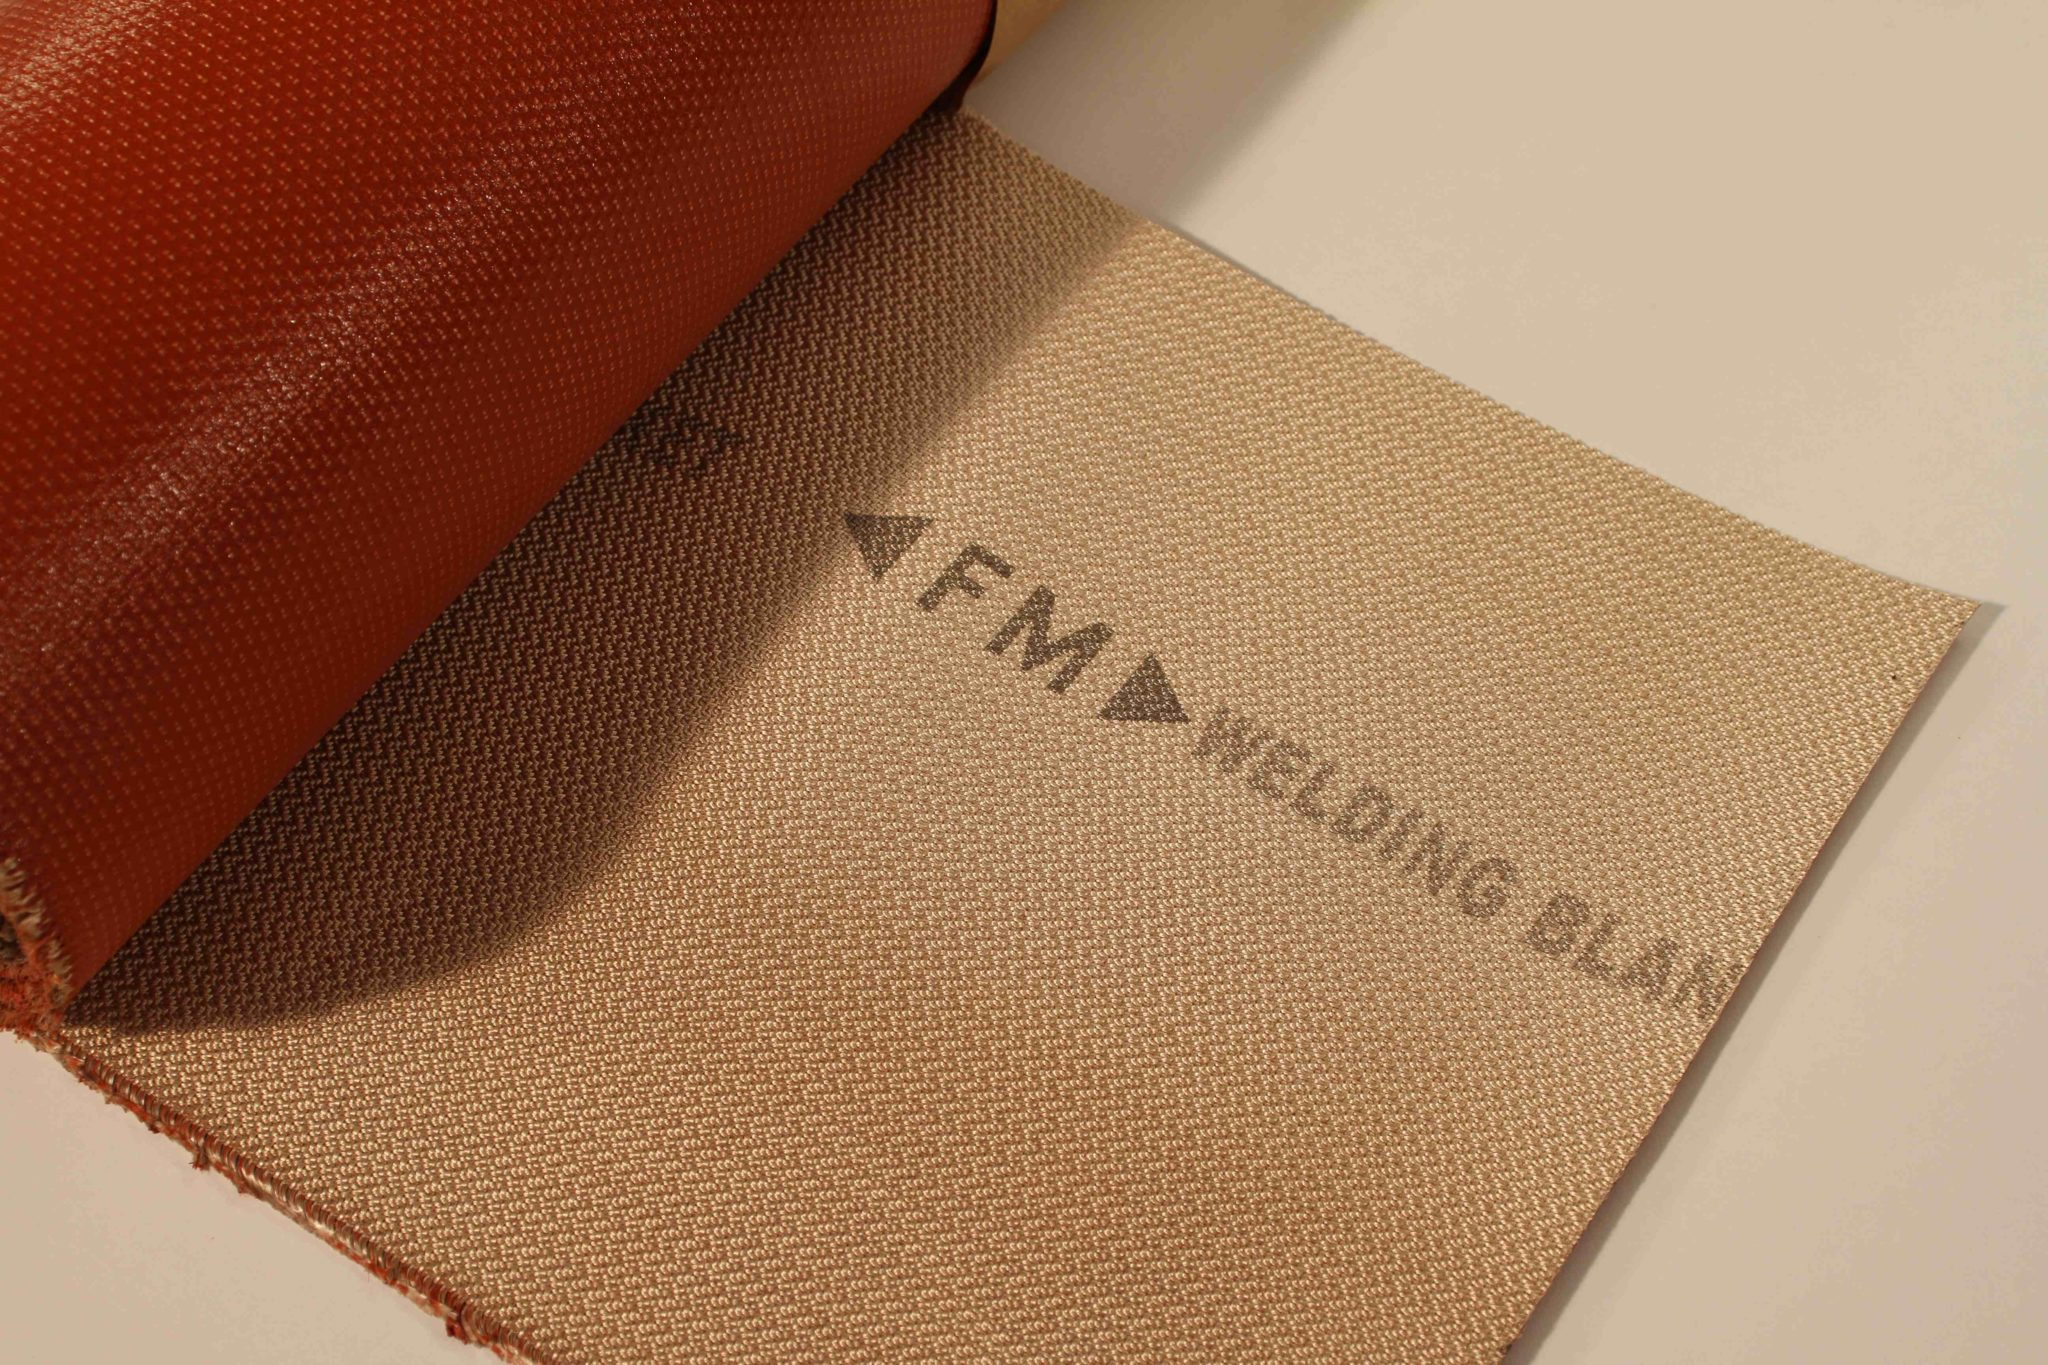 FM Approved Fabrics and Textiles for Welding Hot Work Operations